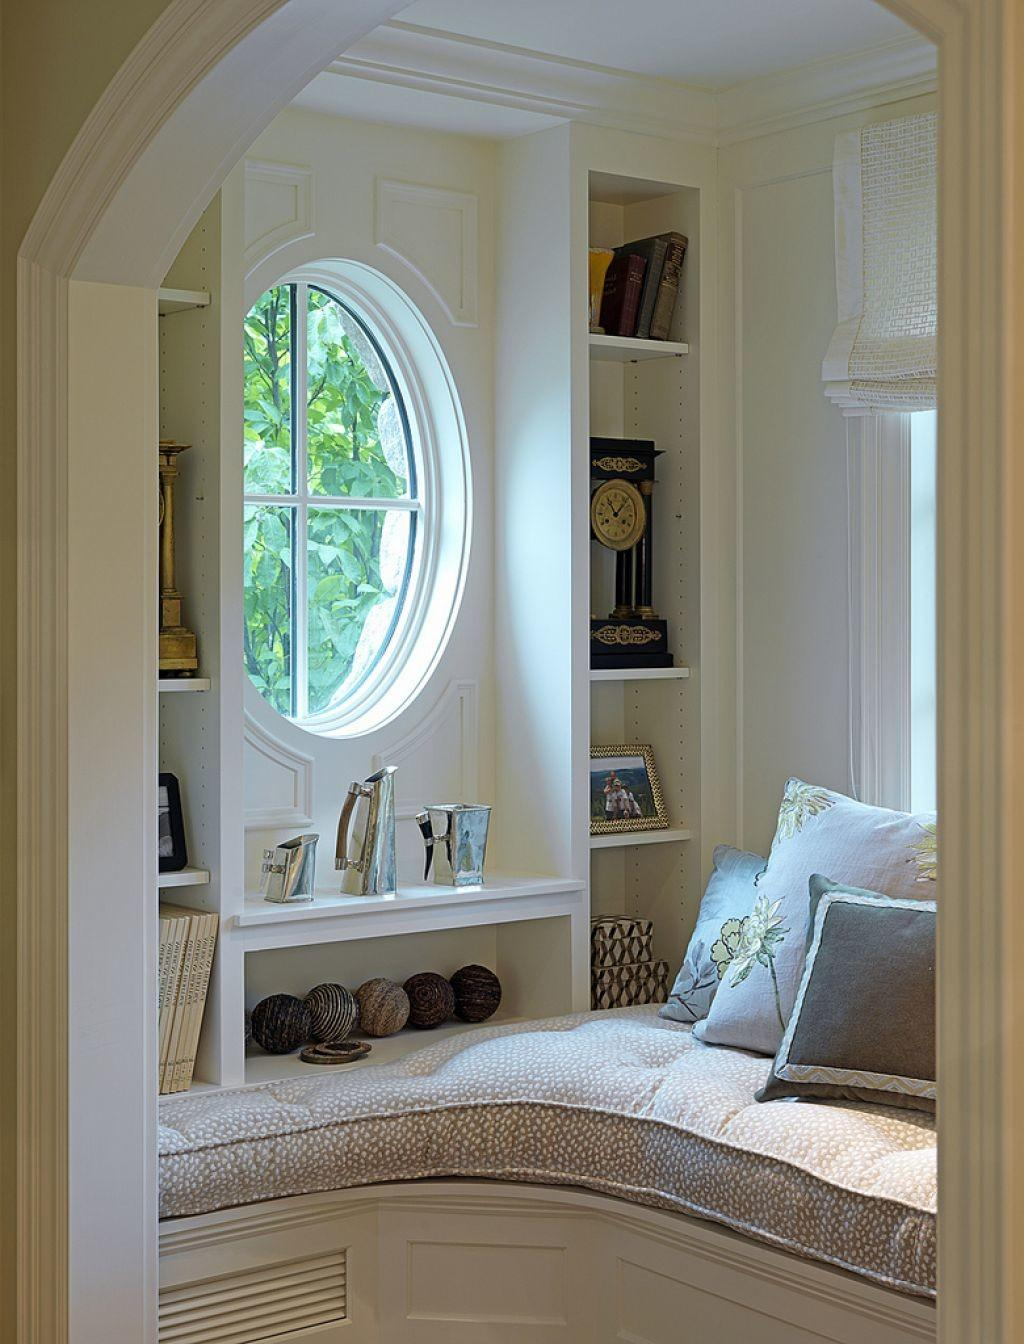 Adorable Round Window Side Cute Storage Right Nook